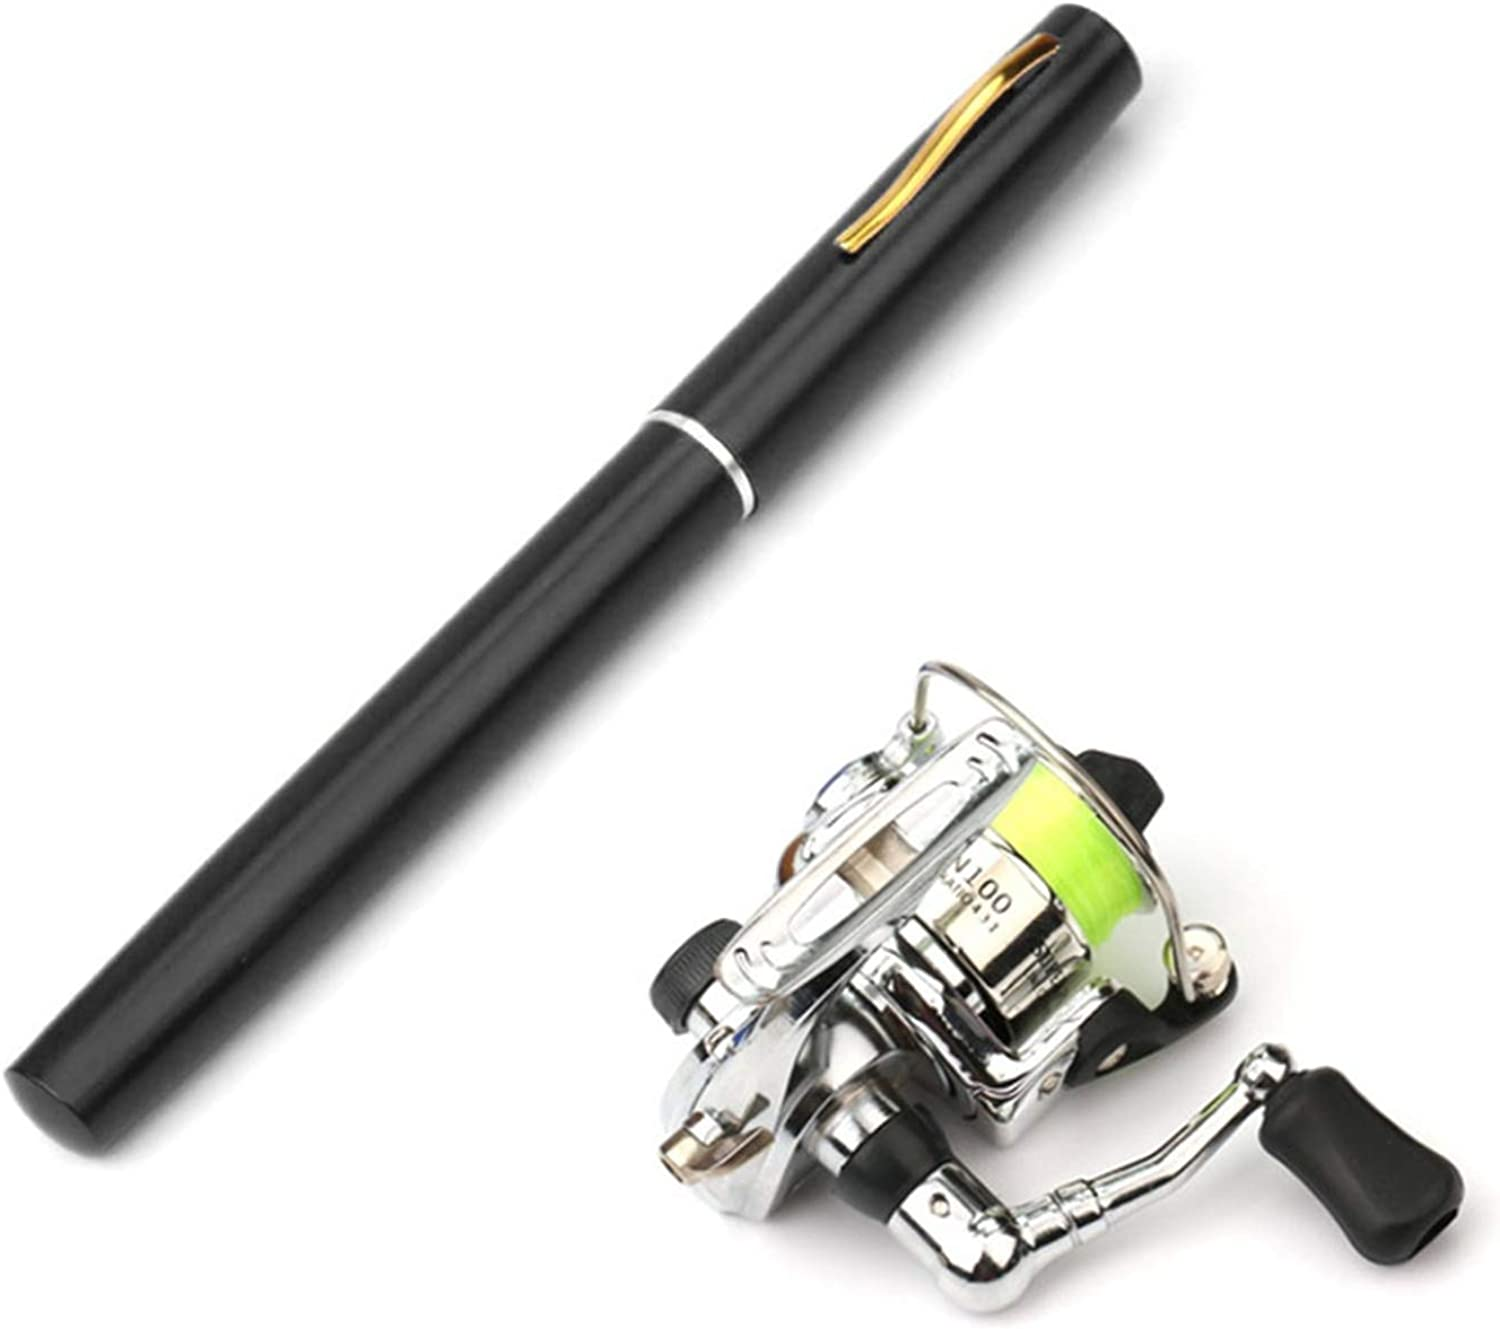 1M   1.4M Mini Pocket Pen Shape Aluminum Alloy Fishing Rod Portable Baitcasting Rods Pole + Fishing Reel Set,Black,1m